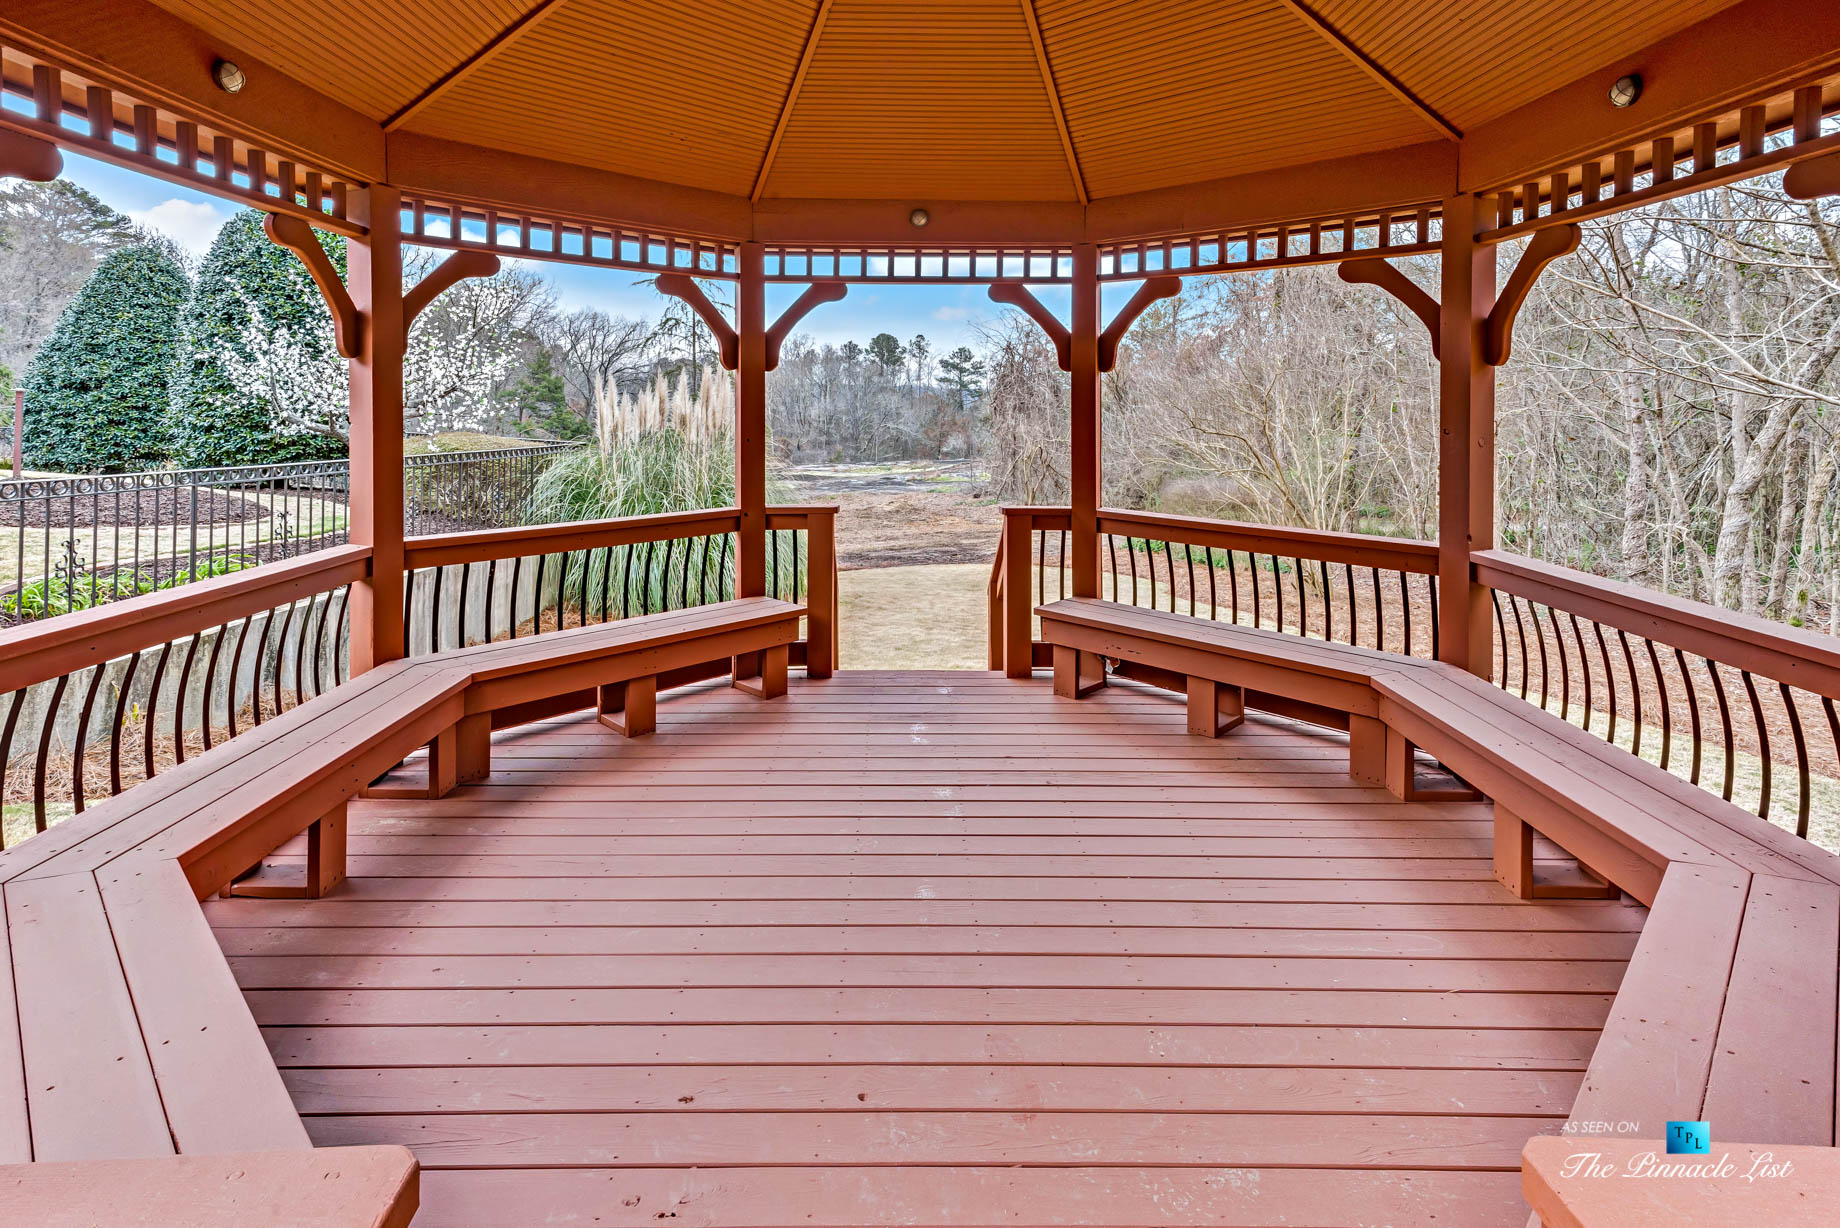 2219 Costley Mill Rd NE, Conyers, GA, USA – Backyard Gazebo – Luxury Real Estate – Equestrian Country Home